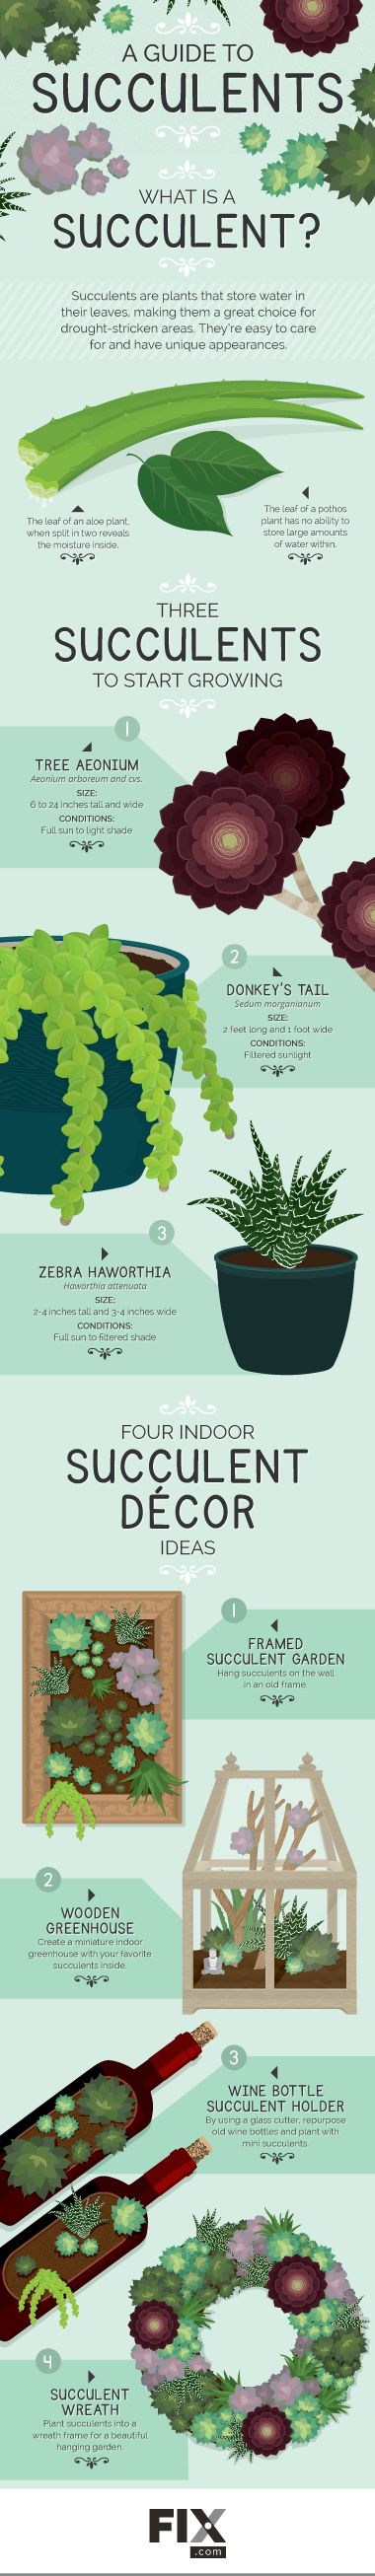 Succulents are beautiful to look at and easy to tend to. Read our guide to growing and caring for succulent plants.